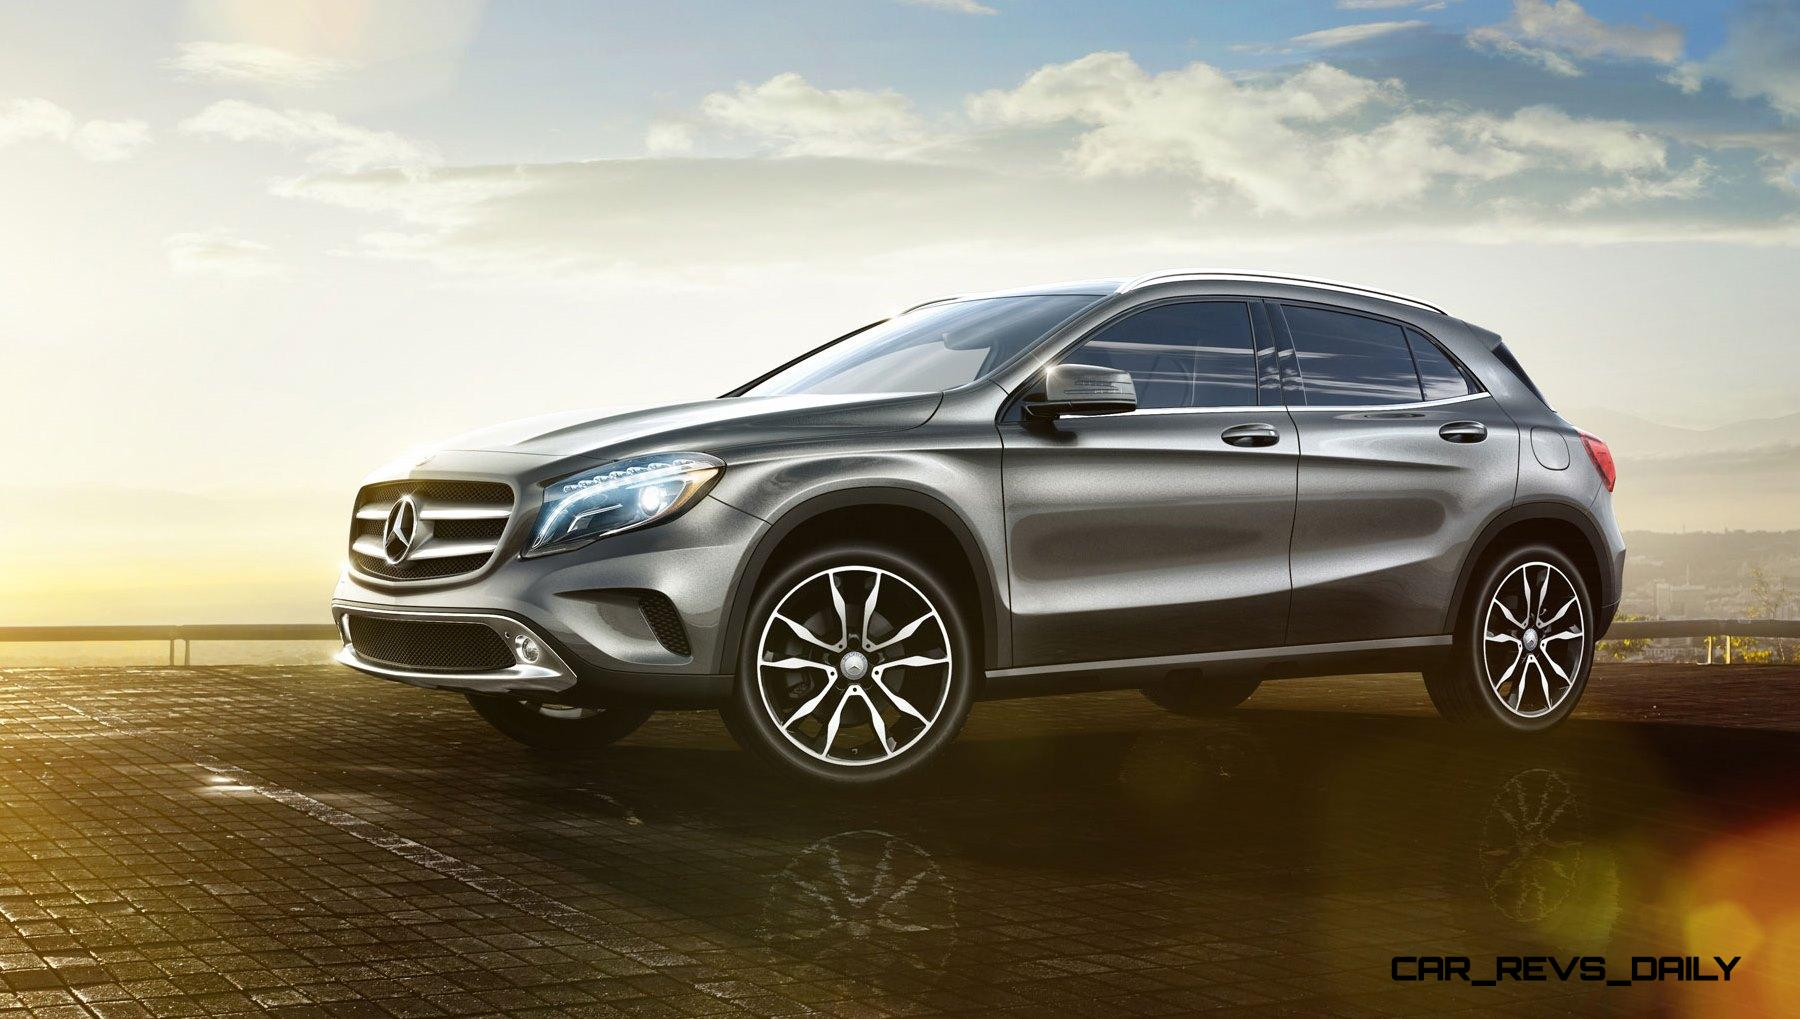 2015 mercedes benz gla250 4matic bases at 34k with for Rahal mercedes benz pittsburgh